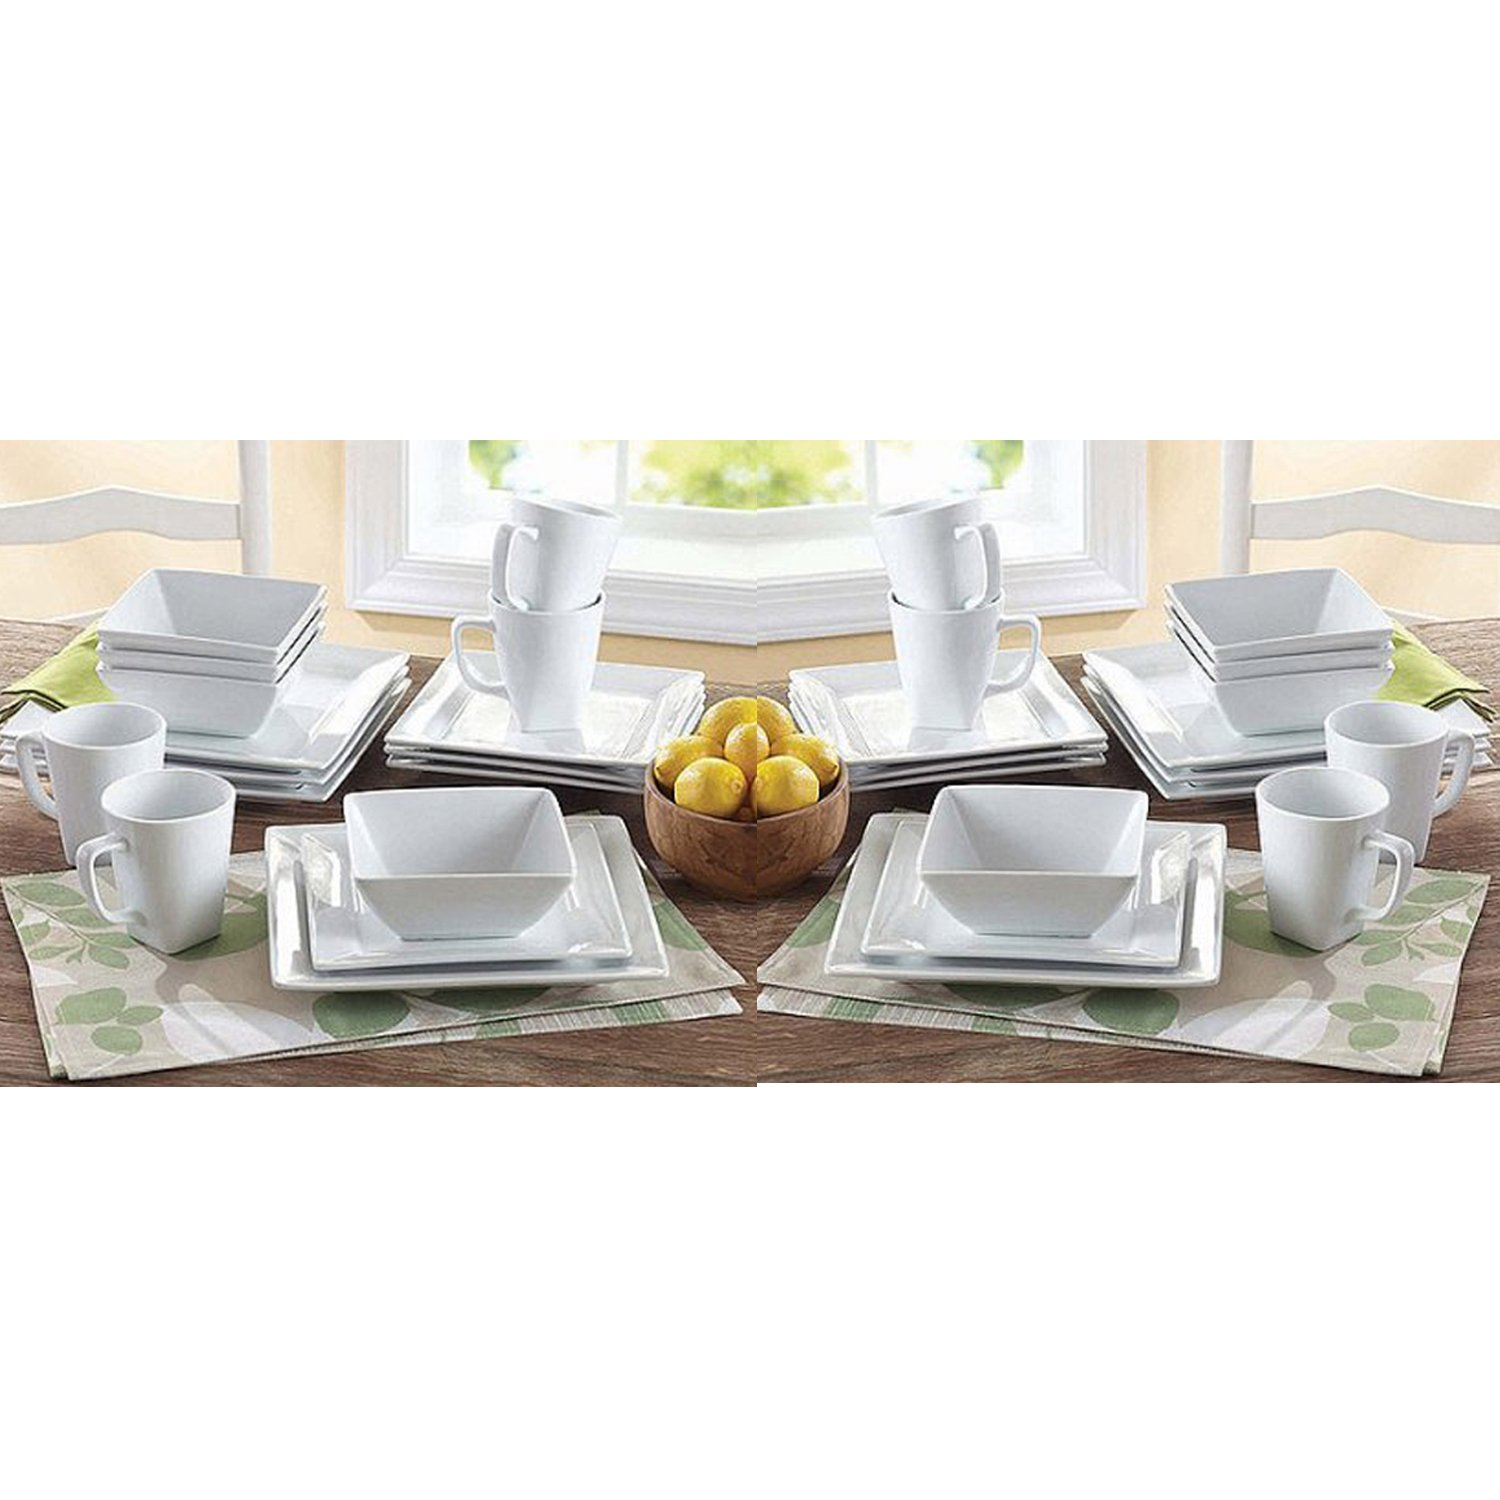 Better Homes and Gardens Square 16 Piece Porcelain Dinnerware Set, 2-Pack